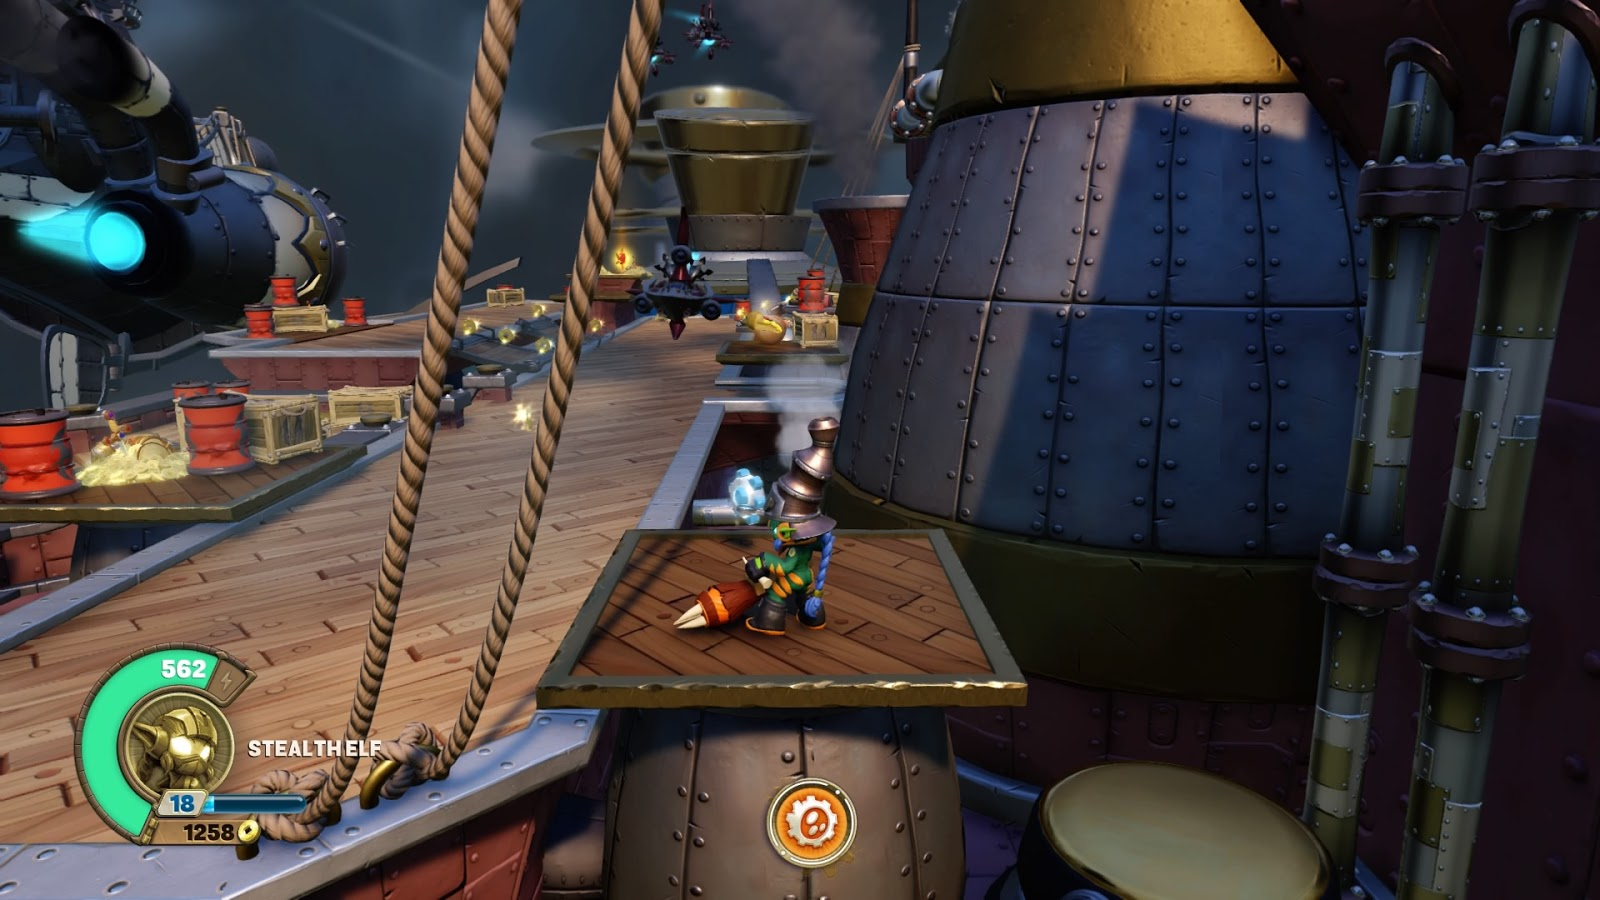 Uncategorized Can You Play Skylanders Online chcses blog skylanders superchargers ps4 you can expand the deck via defeating opponents and collectibles lastly there is a cooperative play for a